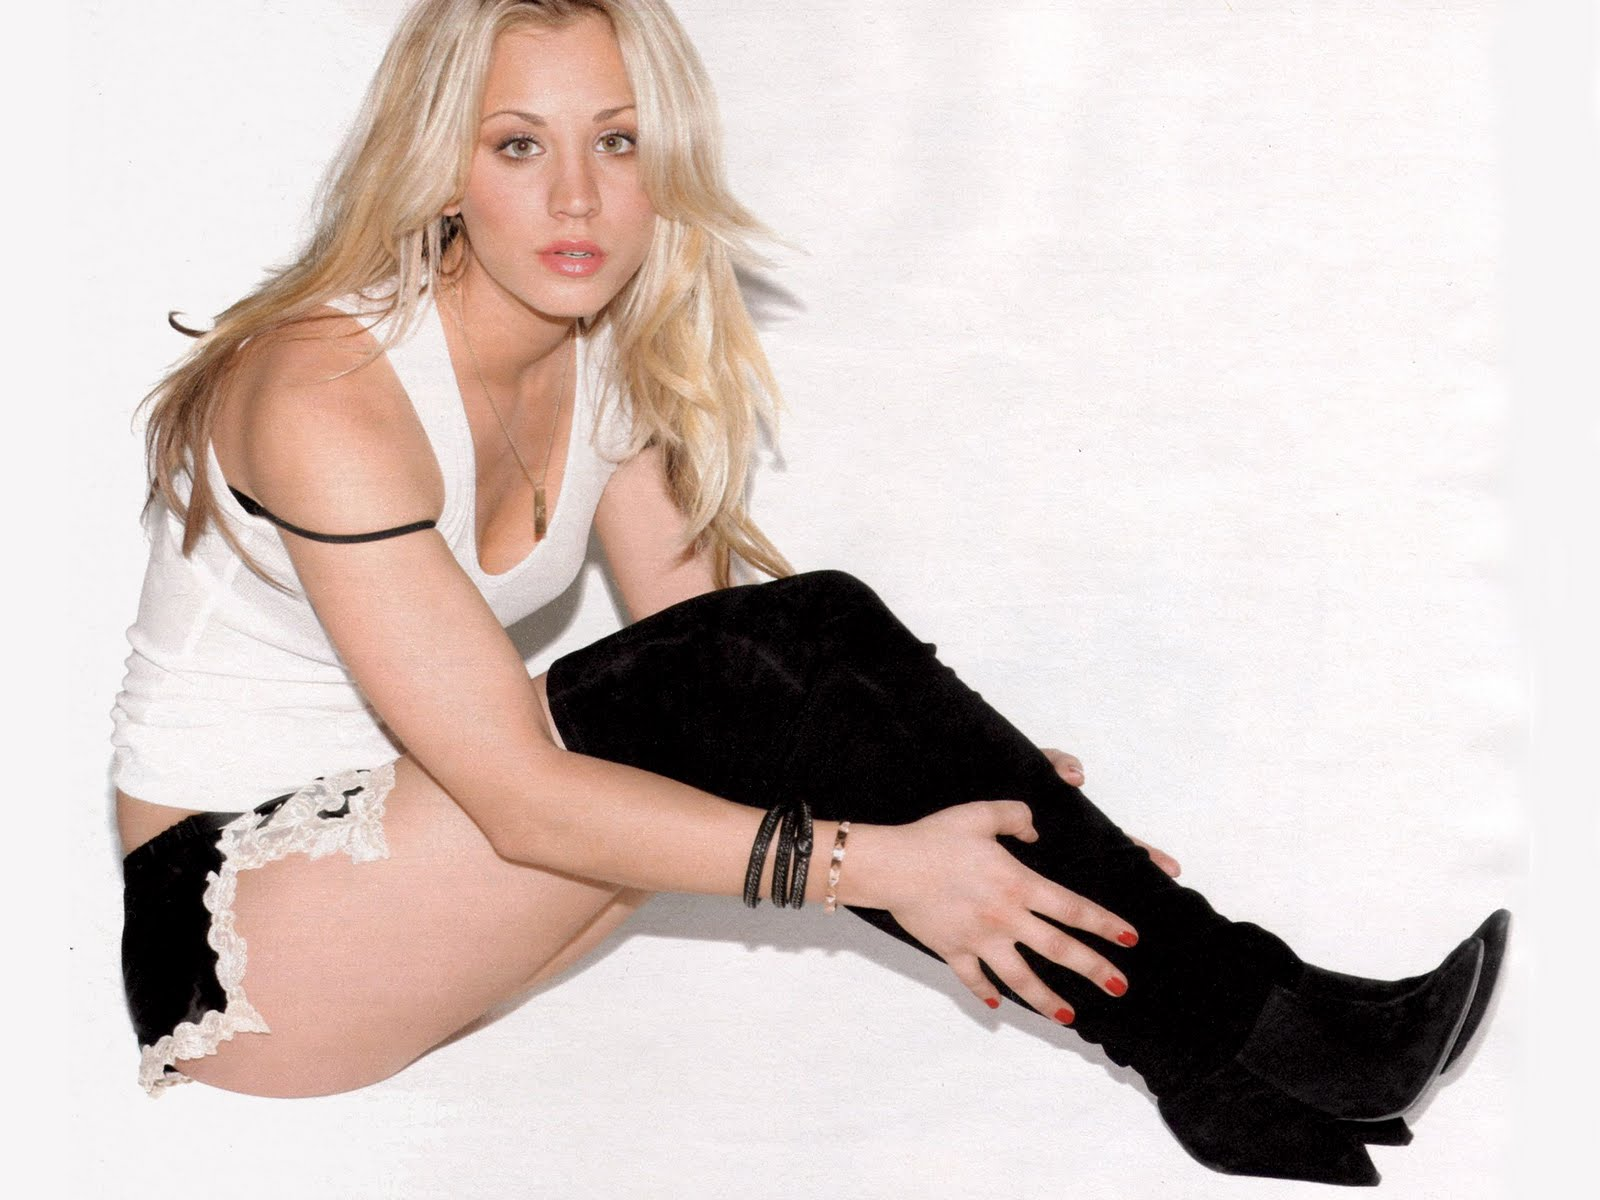 hollywood actresses wallpapers - hot wallpapers hd: kaley cuoco